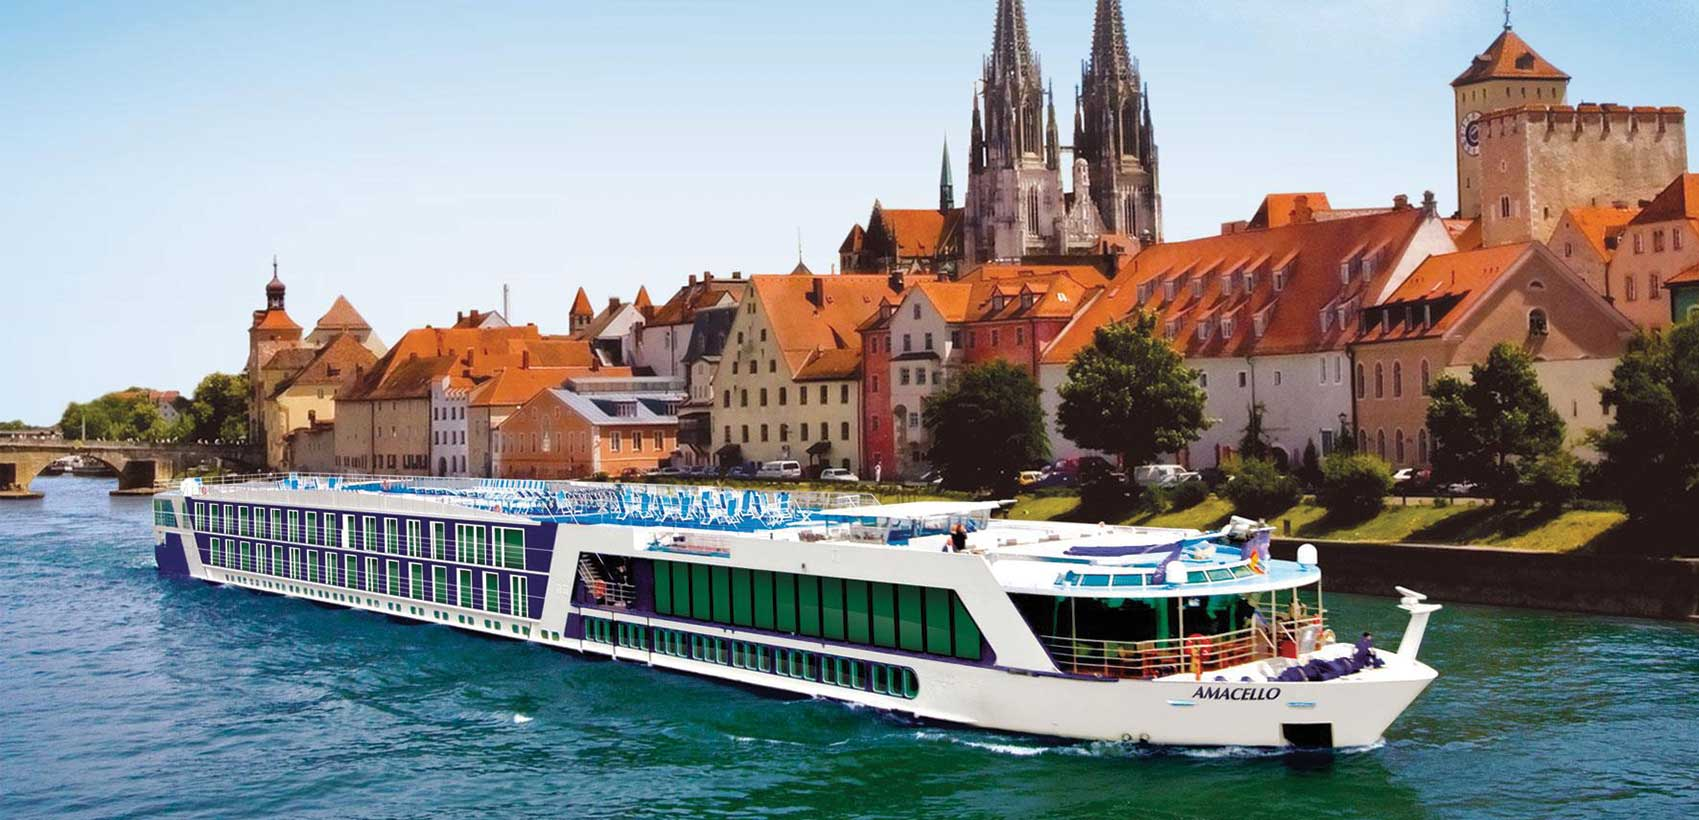 Save up to $2,000 Per Stateroom on Select Sailings with AmaWaterways! 0